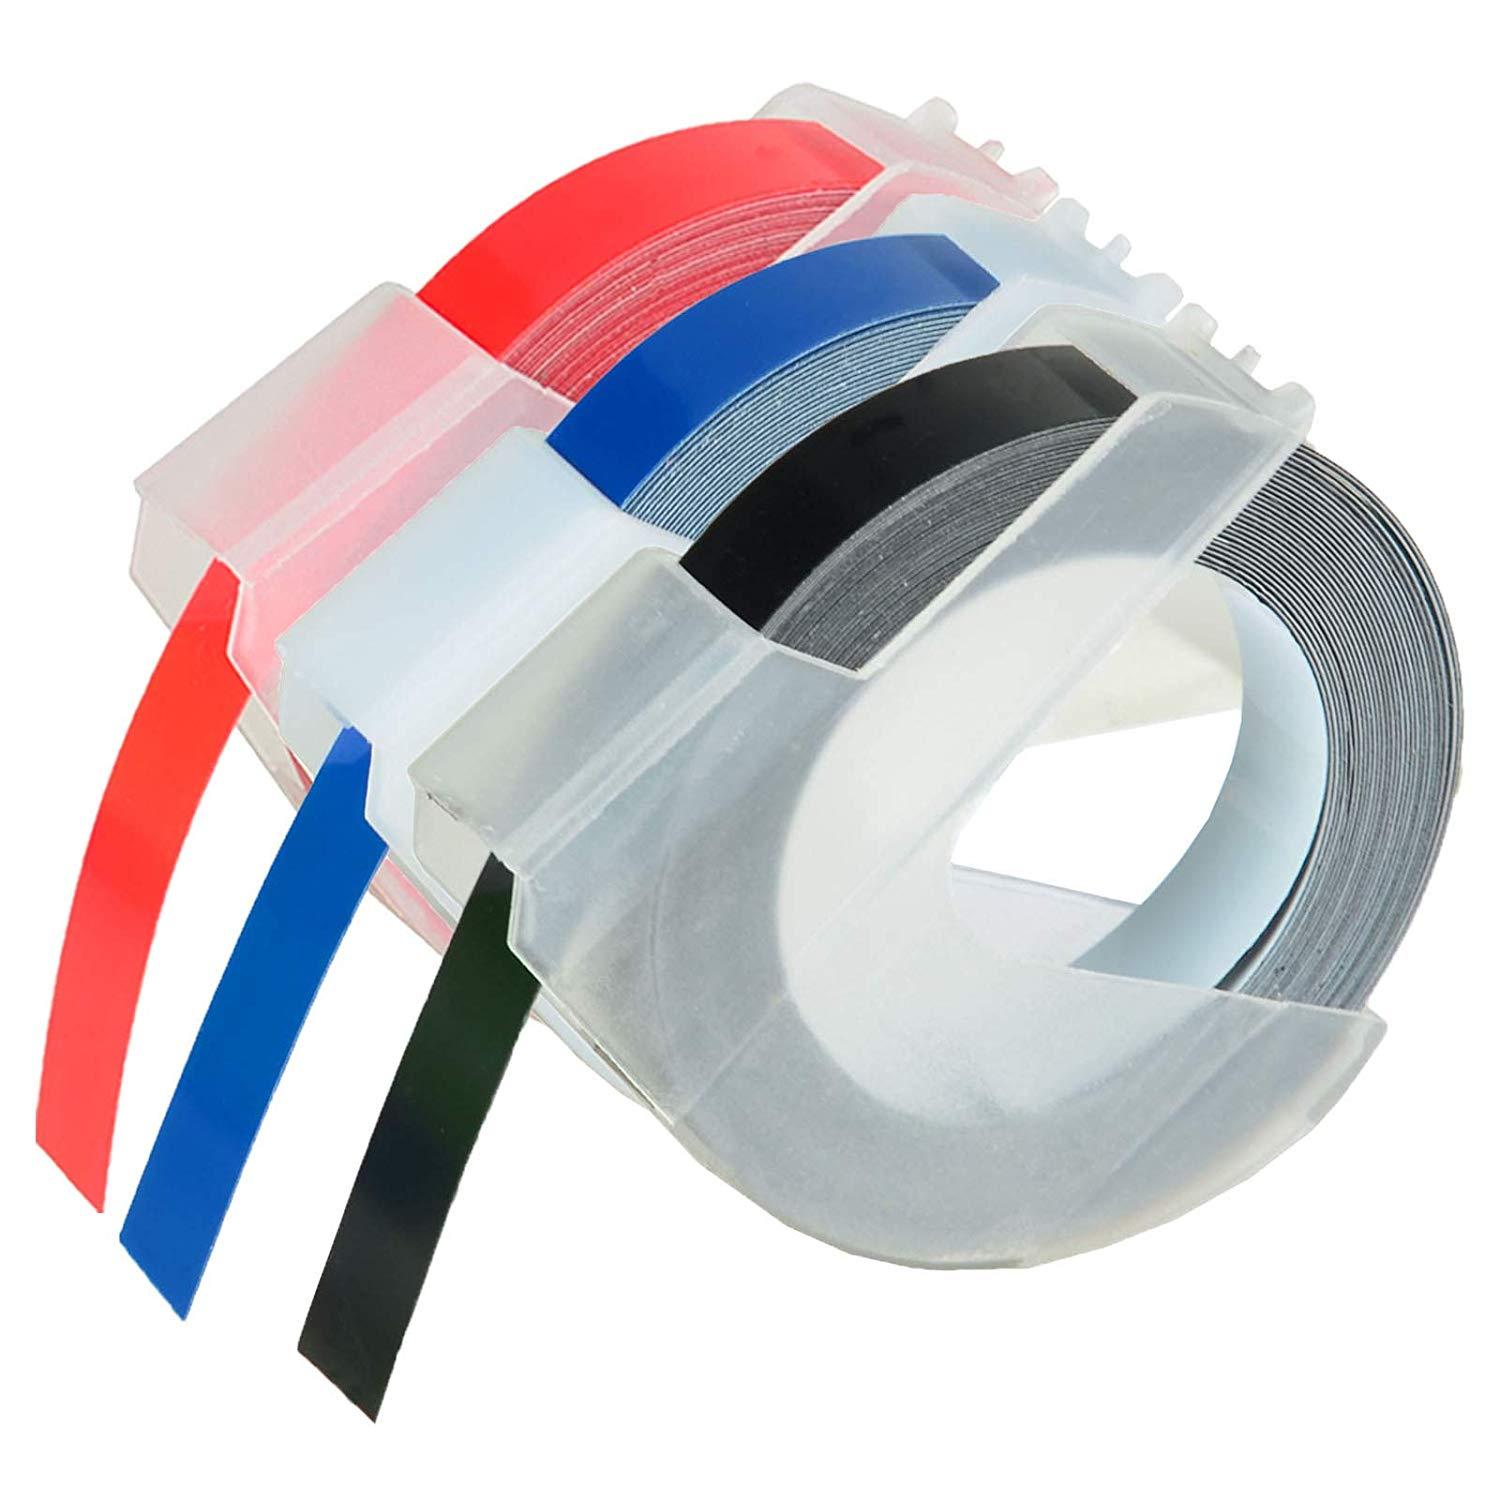 fd87105a9a58e0 KCYMTONER 3 roll Pack Replace DYMO 3D Plastic Embossing Labels Tape for  Embossing White on Red Blue Black 3 8   x 9.8  9mm x 3m 520102 520106  520109 for ...